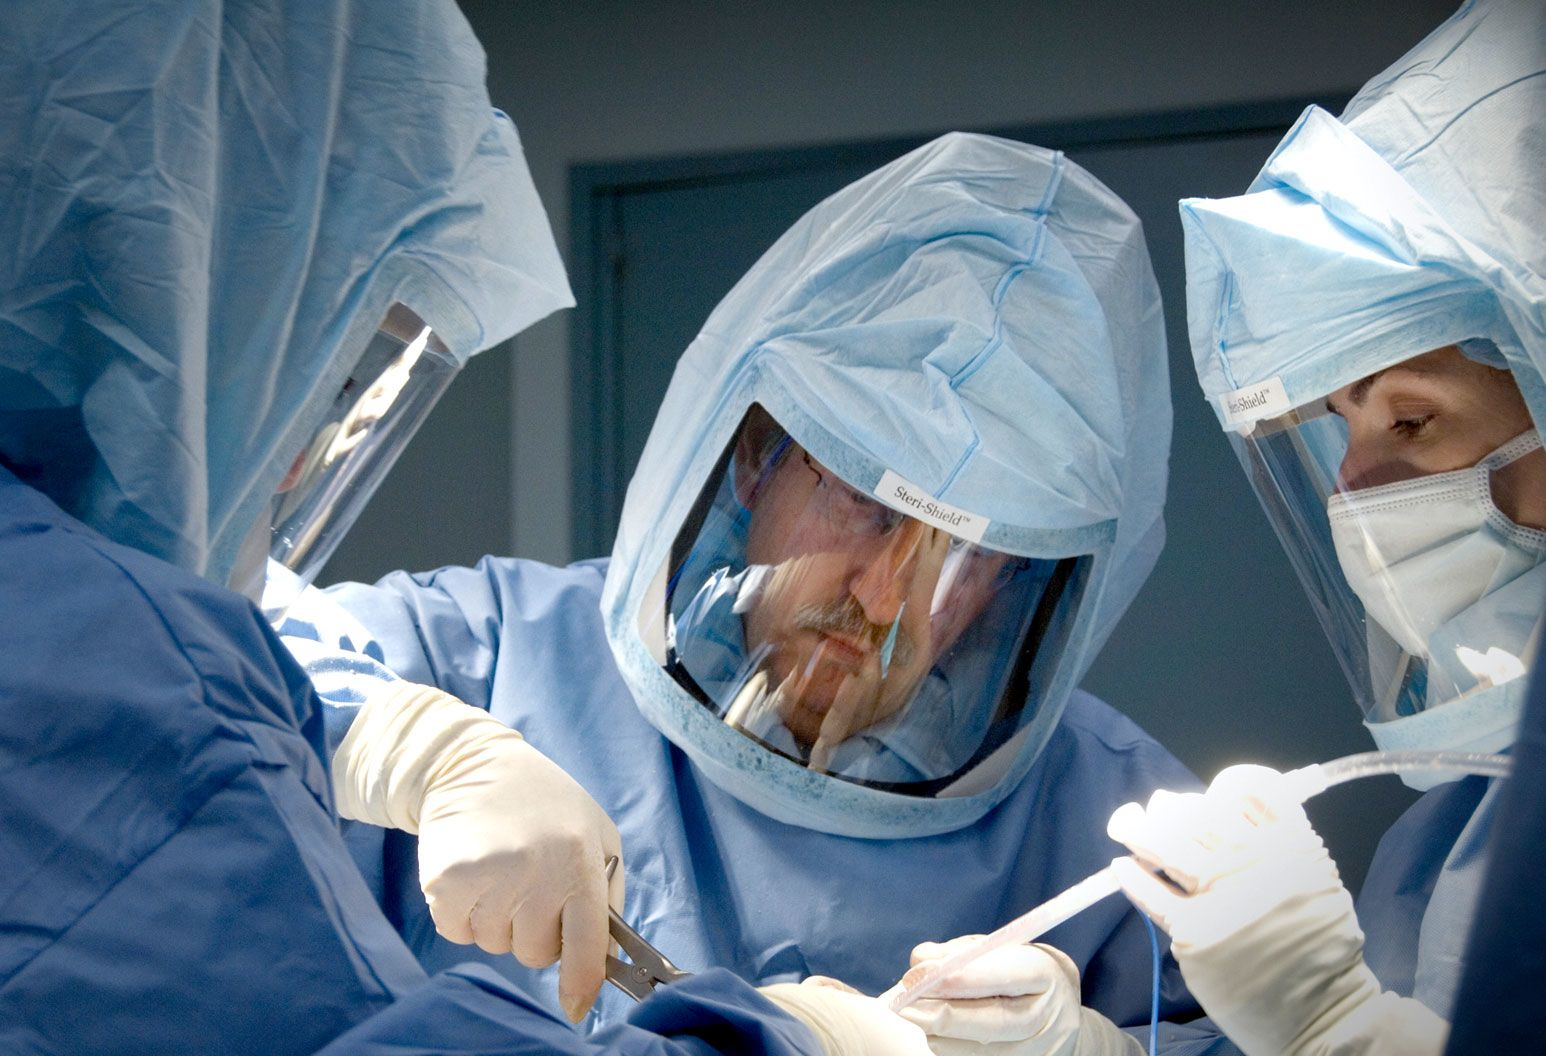 Three surgeons wearing scrubs and masks over their faces perform surgery. The focus is on the male doctor in the middle who is cutting a tube with surgical equipment.